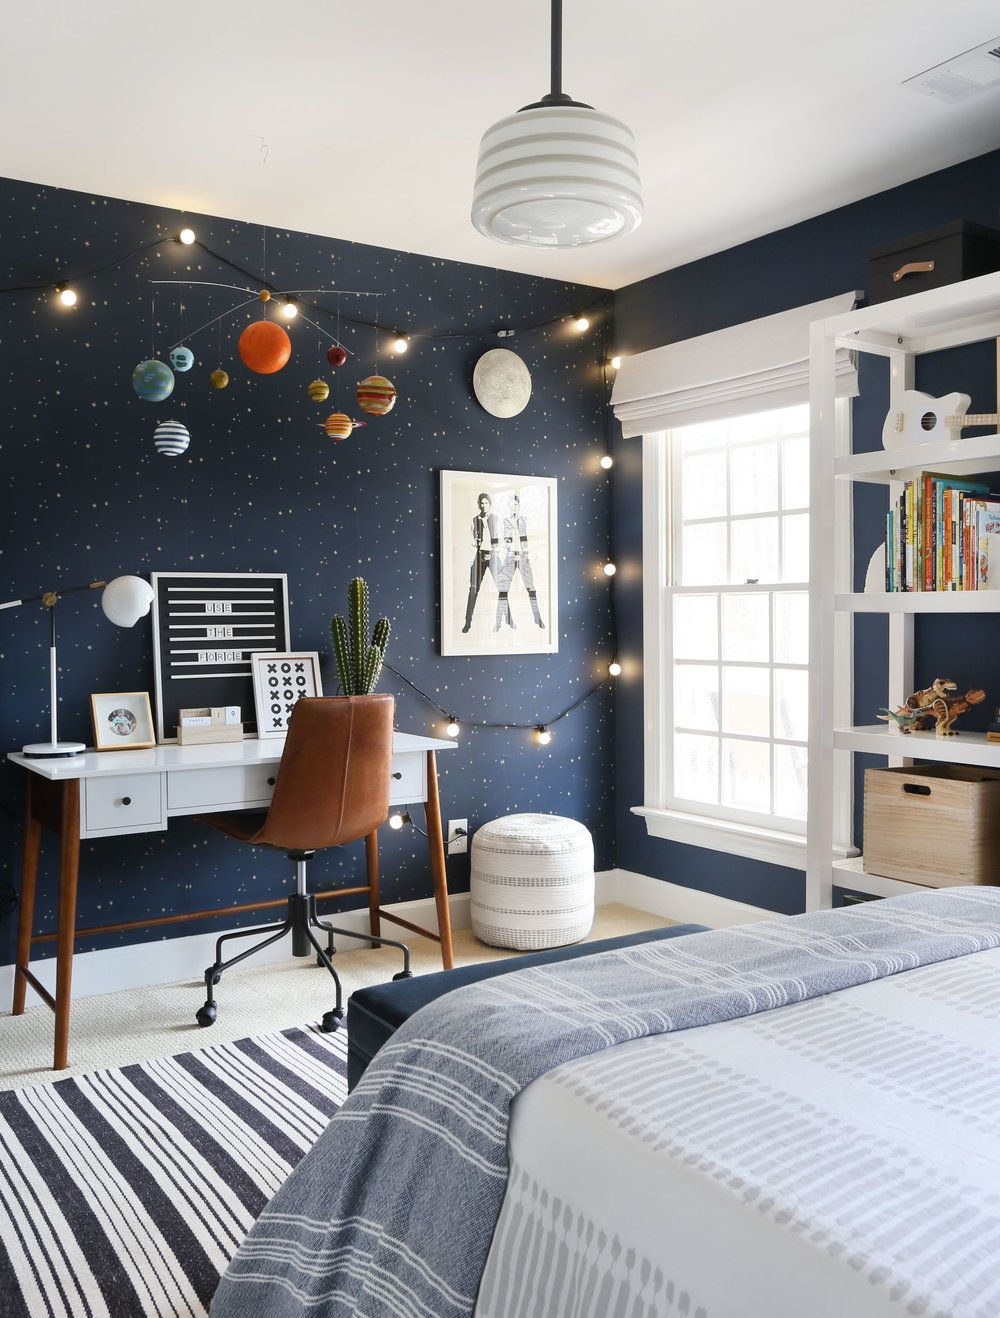 Toddler Boy Room Design: A Bold, Playful And Out Of This World Kid's Room